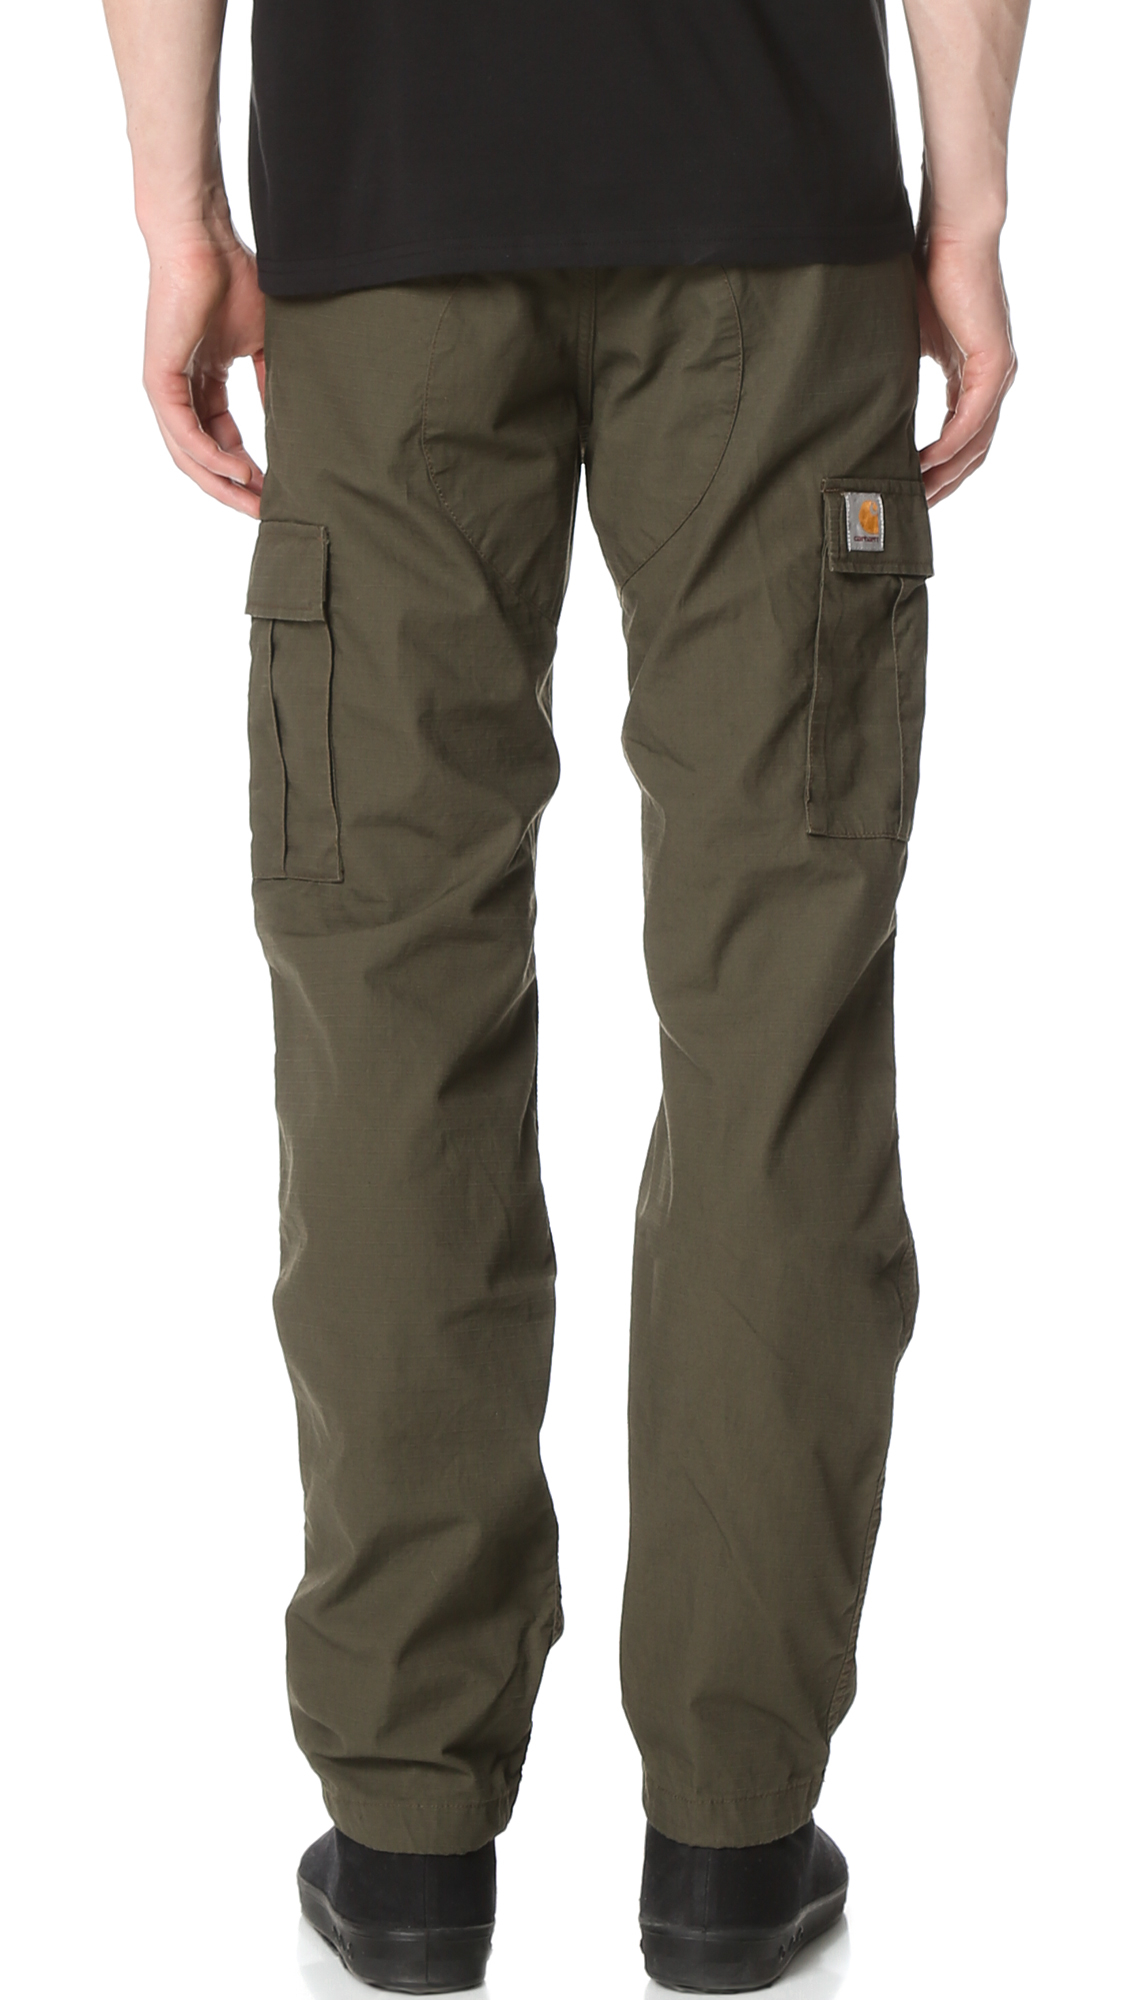 carhartt wip rinsed aviation pants in green for men lyst. Black Bedroom Furniture Sets. Home Design Ideas